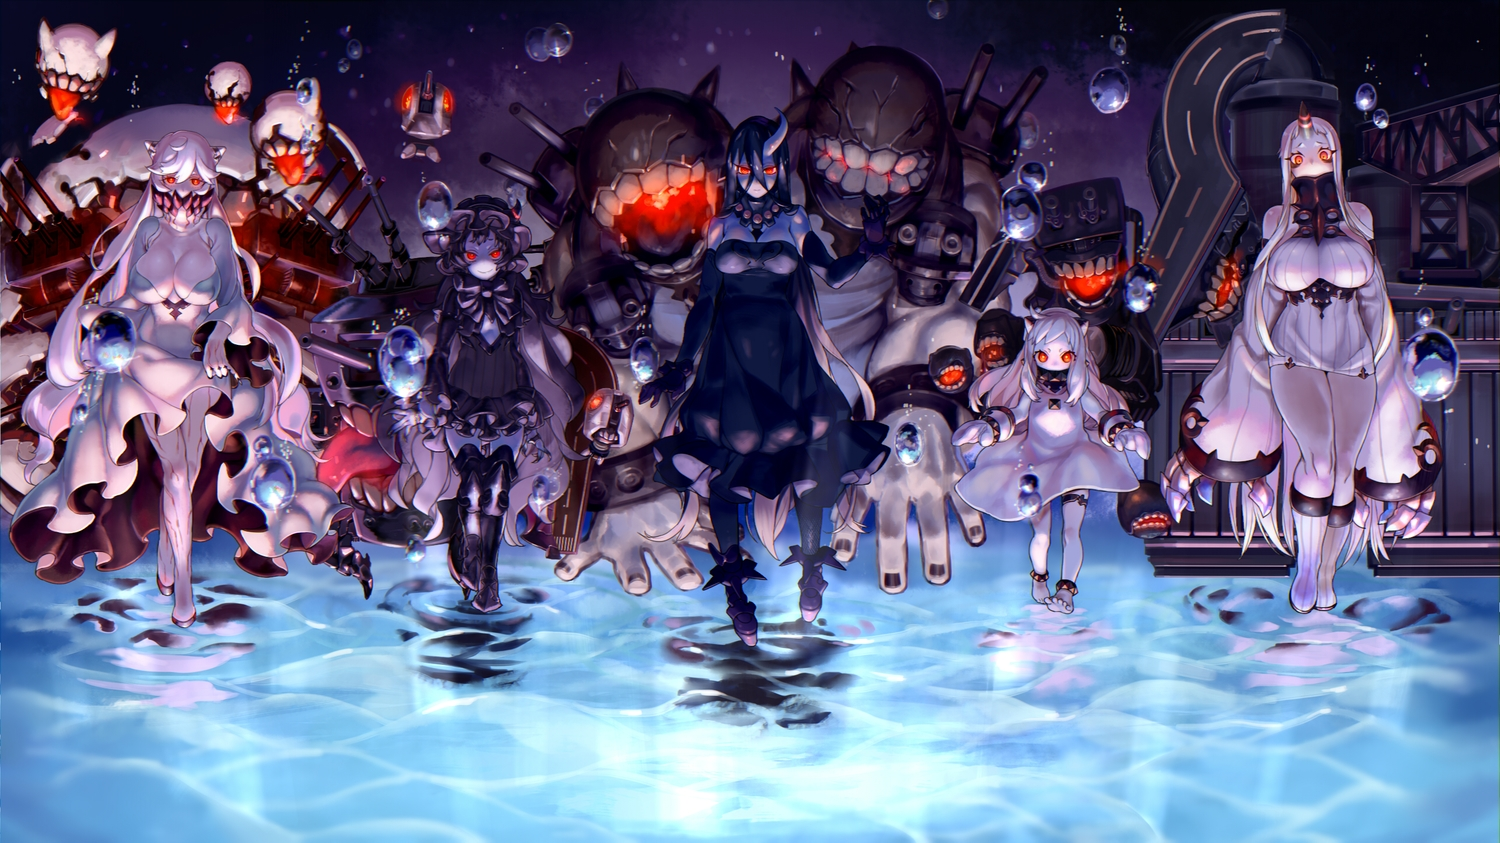 anthropomorphism battleship_water_oni black_hair breasts cleavage dress goth-loli group horns isolated_island_hime japanese_clothes kantai_collection kareha_(sakura-turibito) loli lolita_fashion long_hair midway_hime northern_ocean_hime red_eyes seaport_hime short_hair thighhighs water white_hair